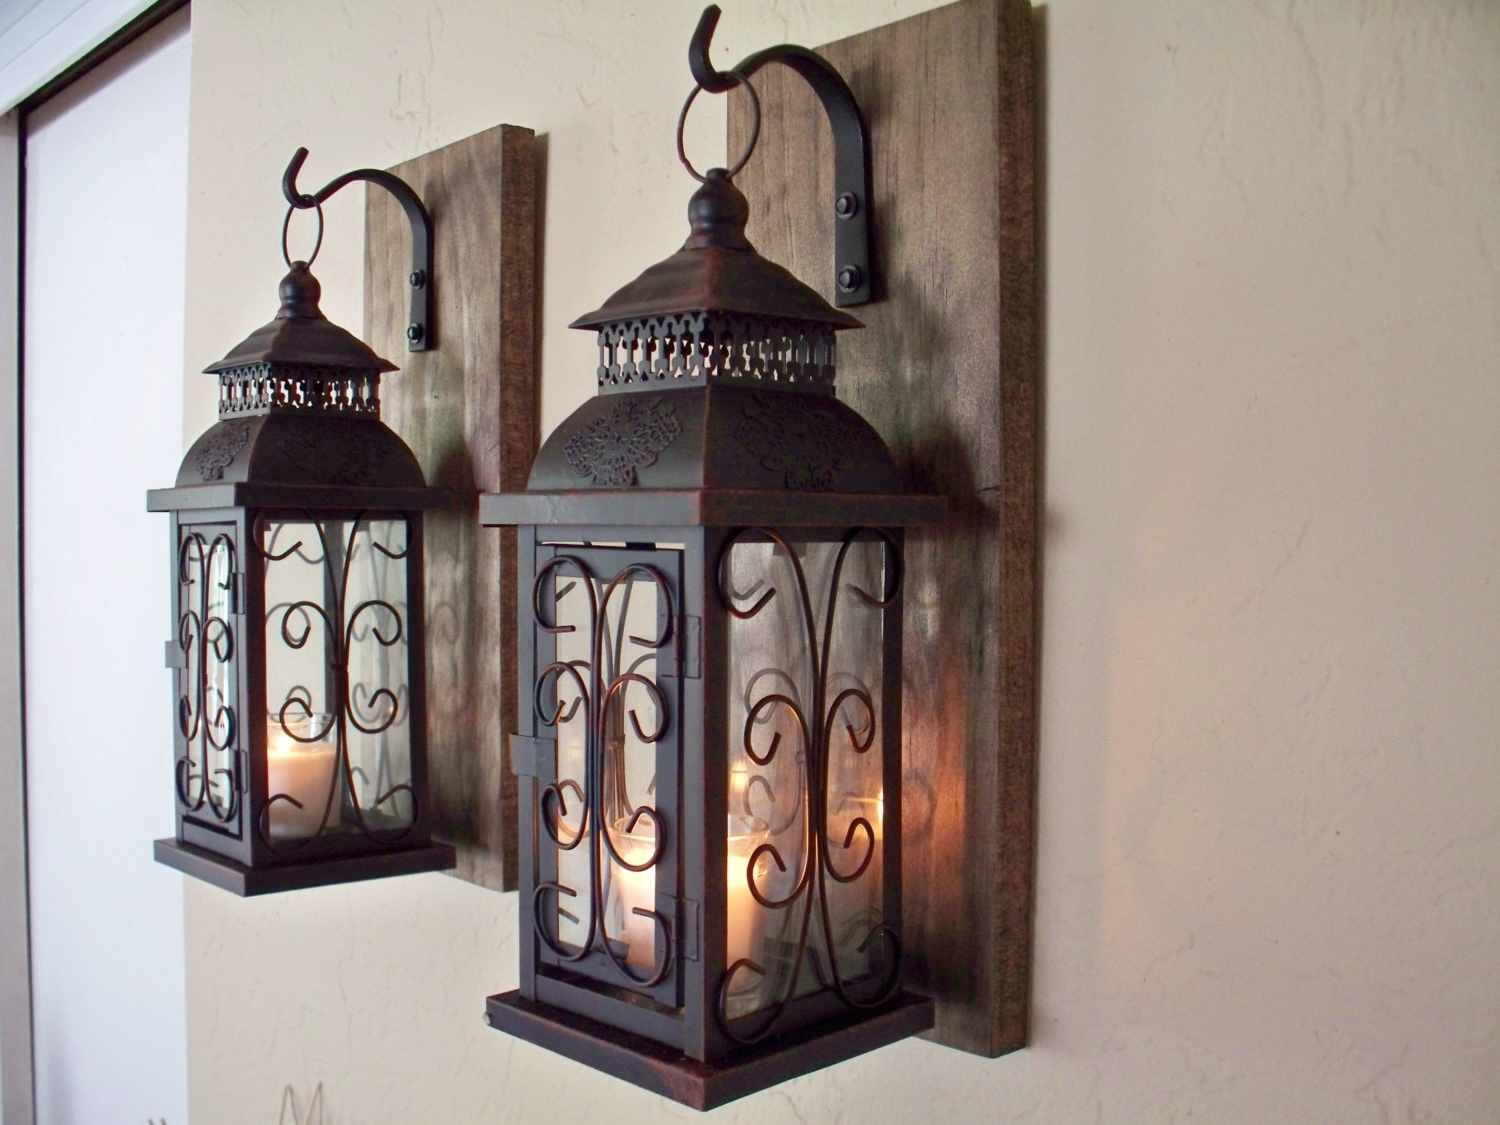 Etsy Outdoor Lanterns Regarding Latest 17 Rustic Lantern Wall Sconce, Lantern Sconces Outdoor Wall Sconce (View 16 of 20)